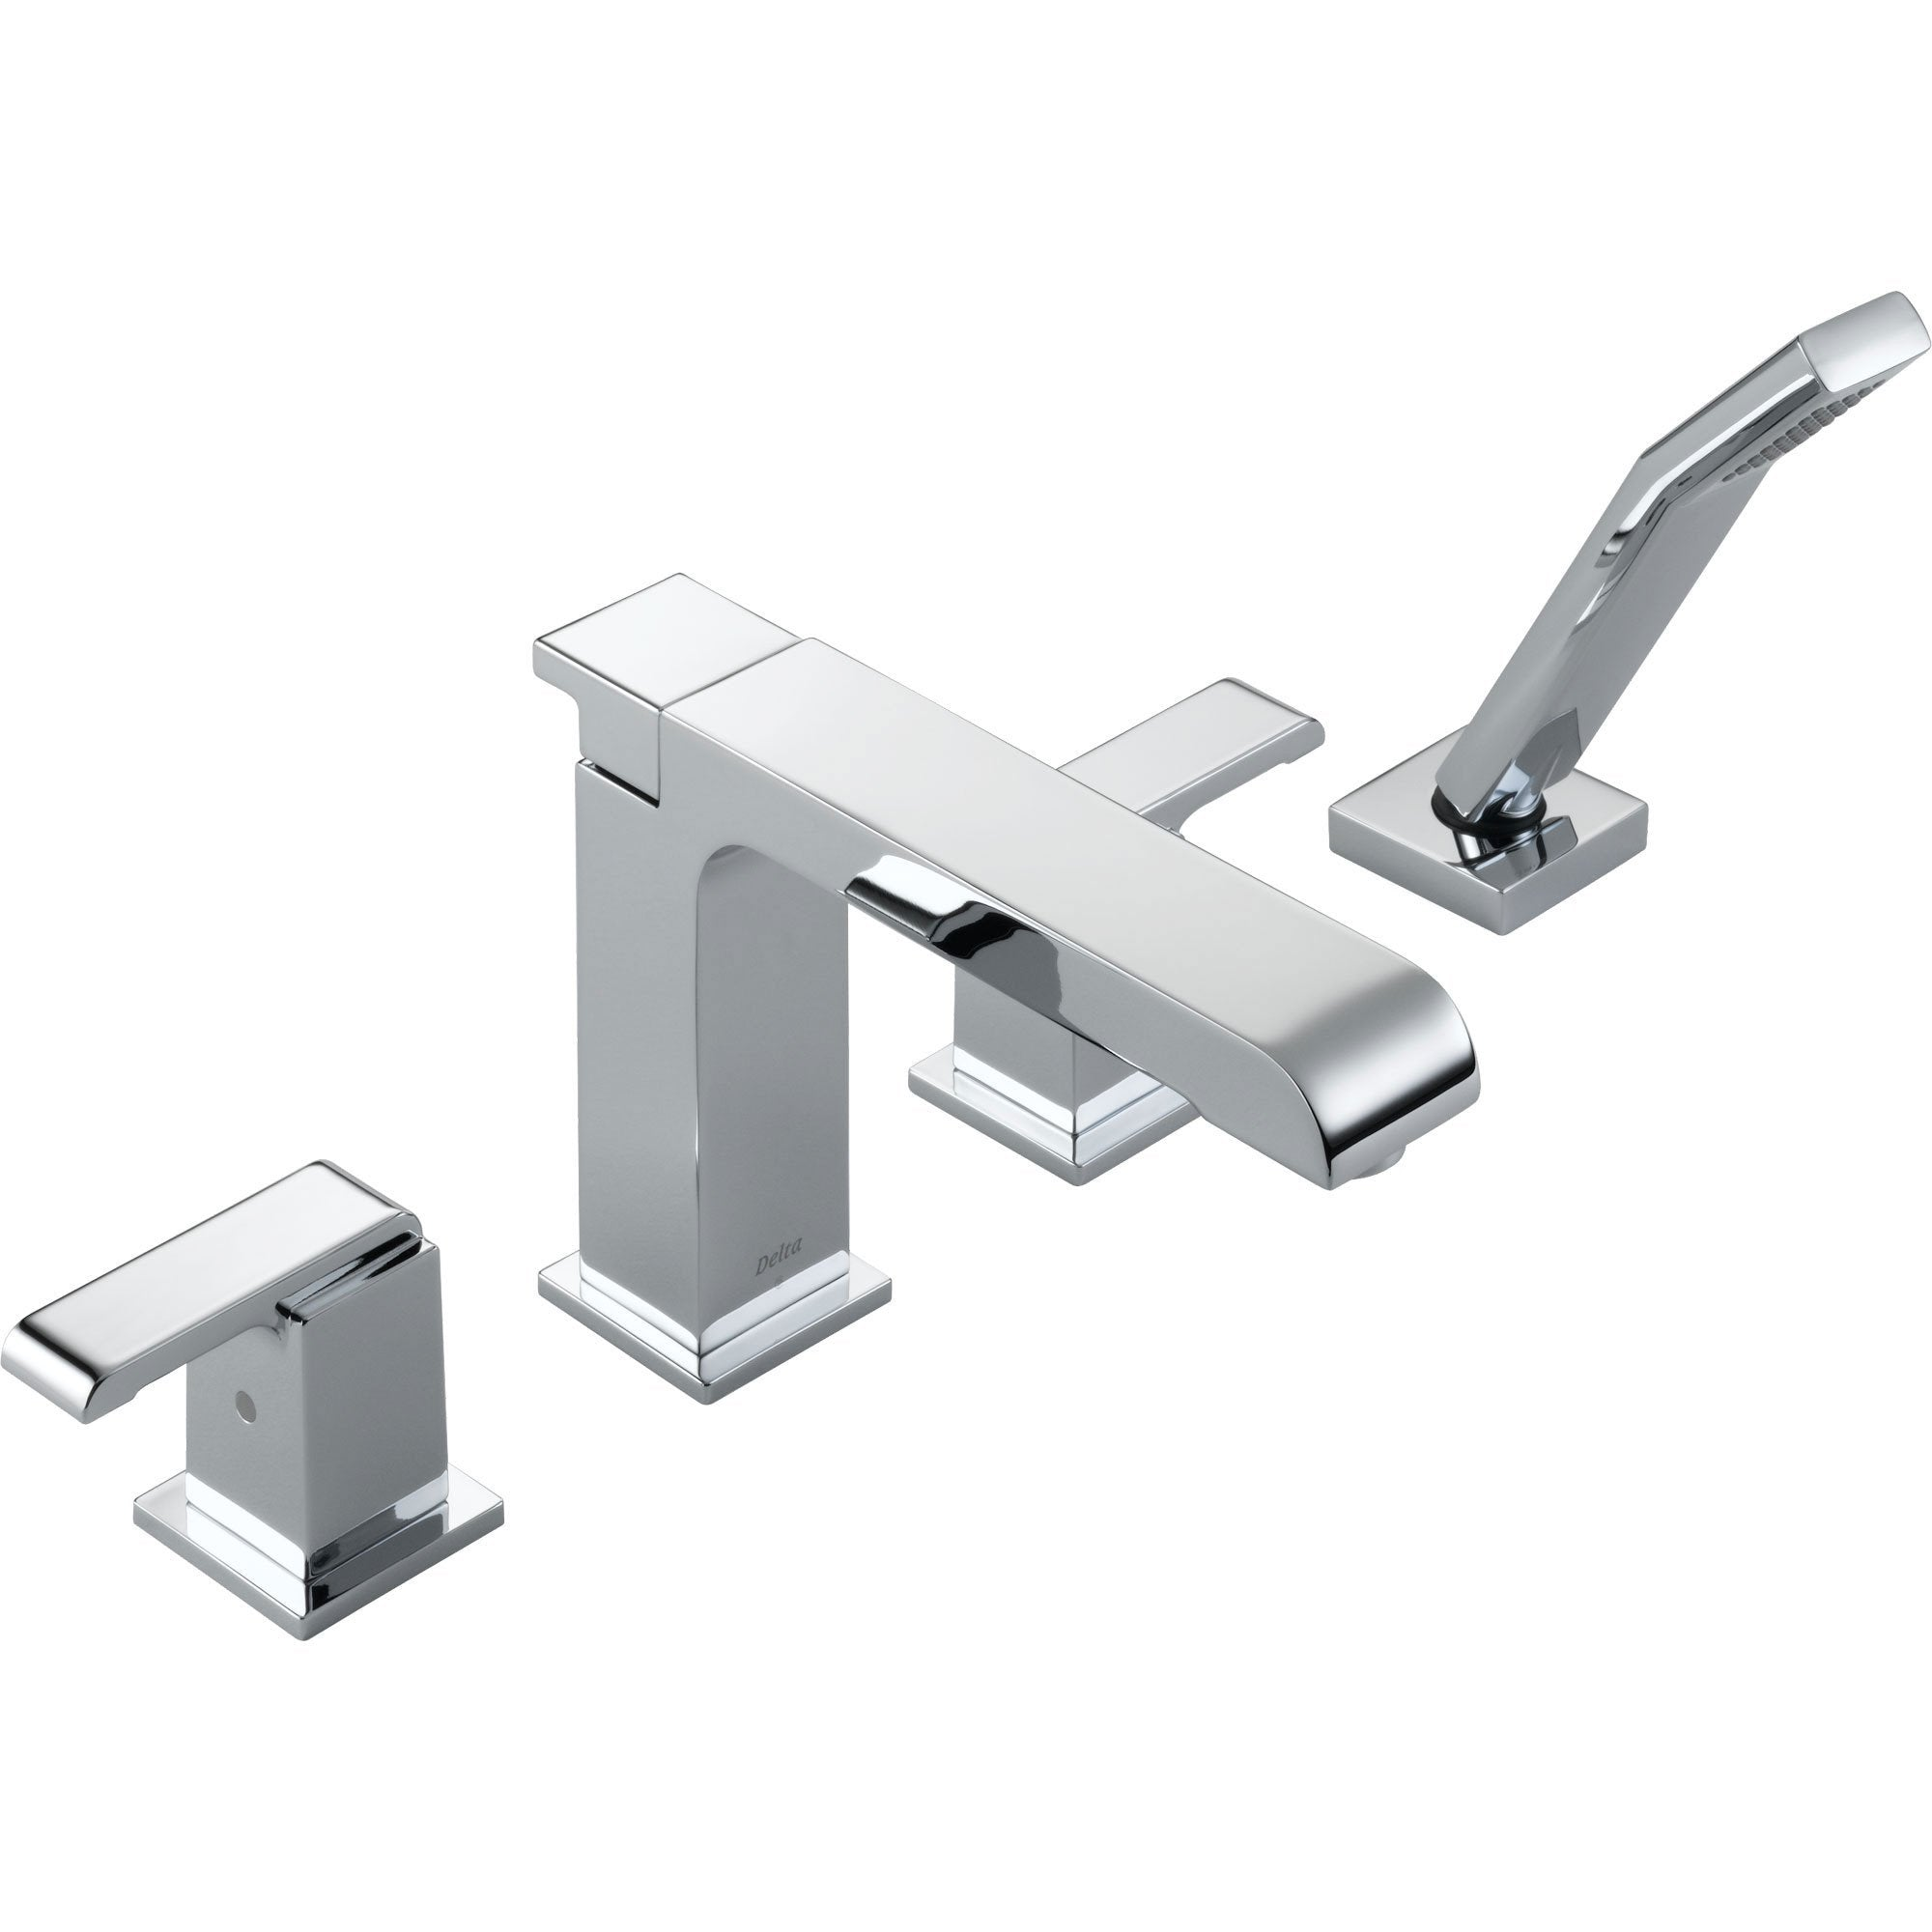 Delta Arzo Modern Square Chrome Roman Tub Faucet with Handshower Trim Kit 352509